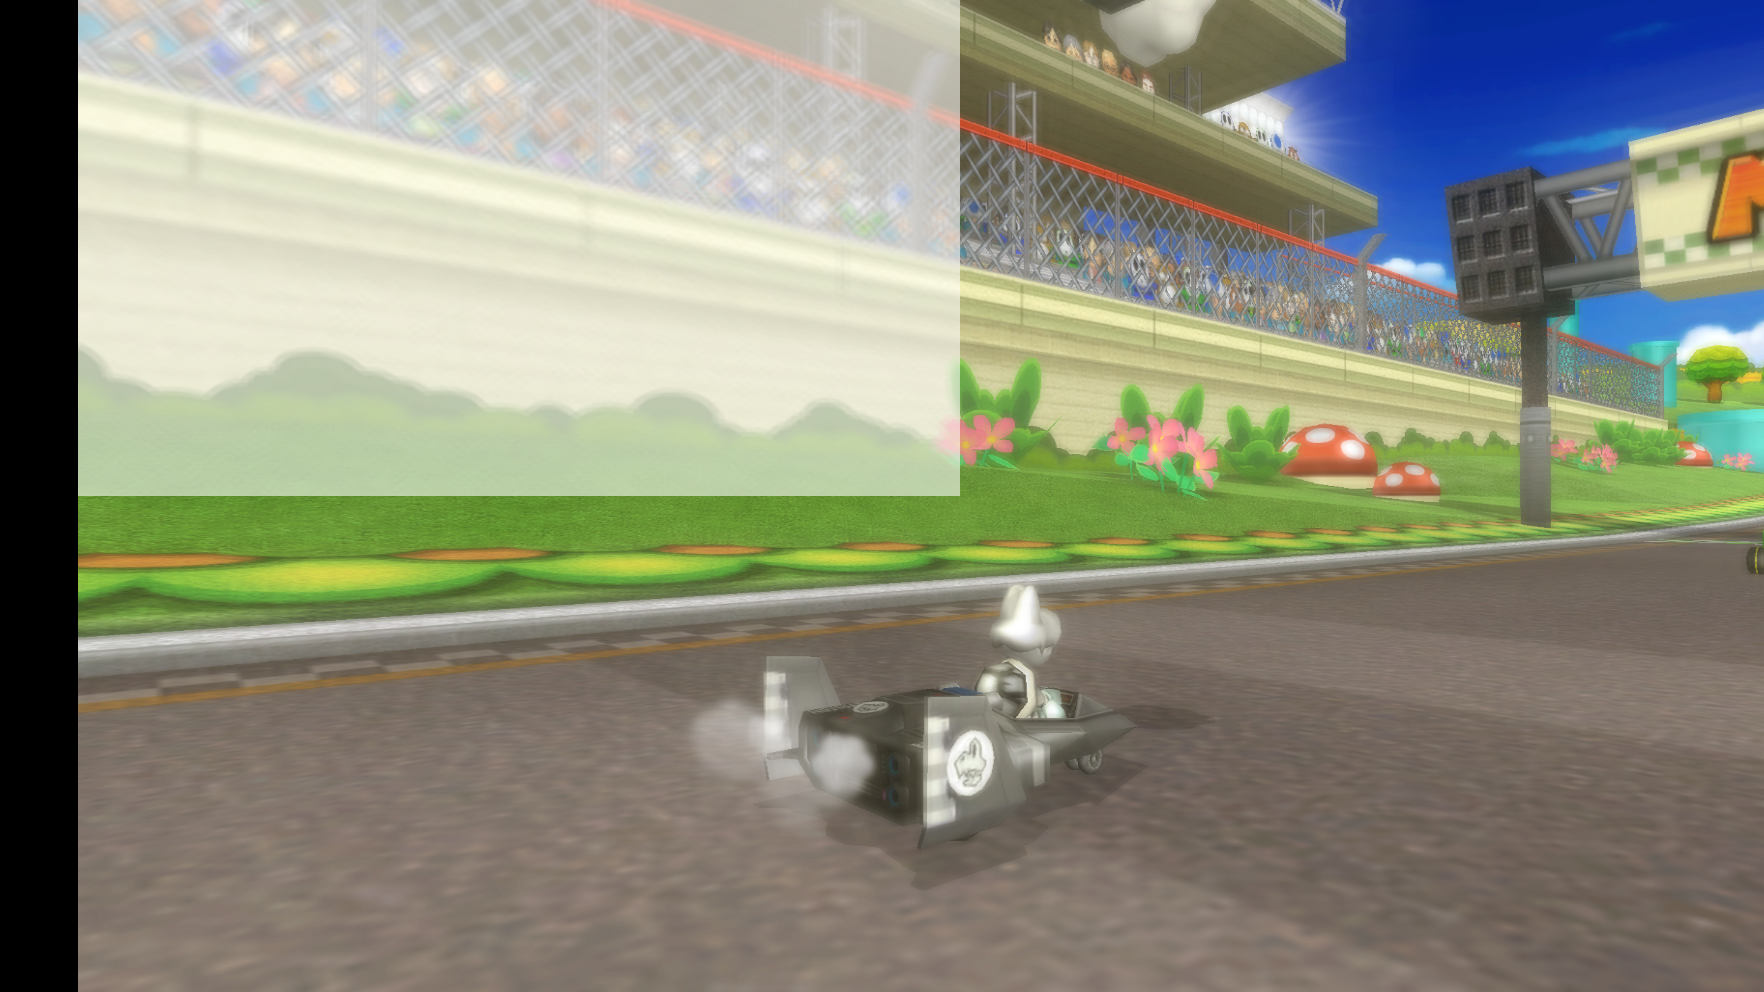 Emulator Issues #9890: Frosted Square Distortion in Mario